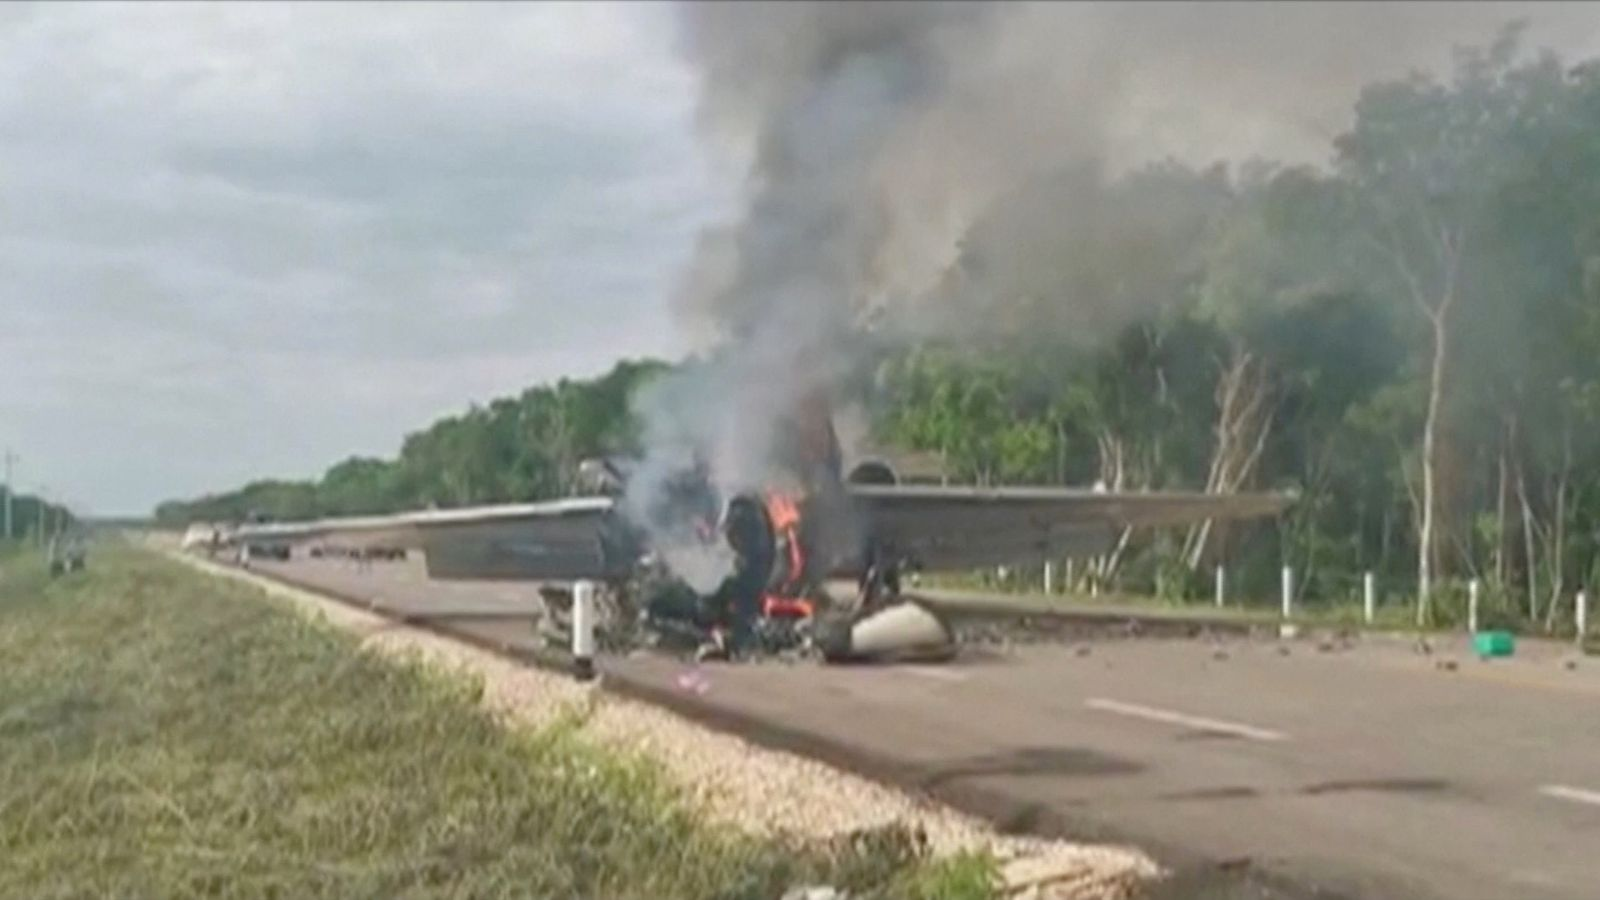 Mexico: Suspected drugs plane found in flames on road after being tailed by the military